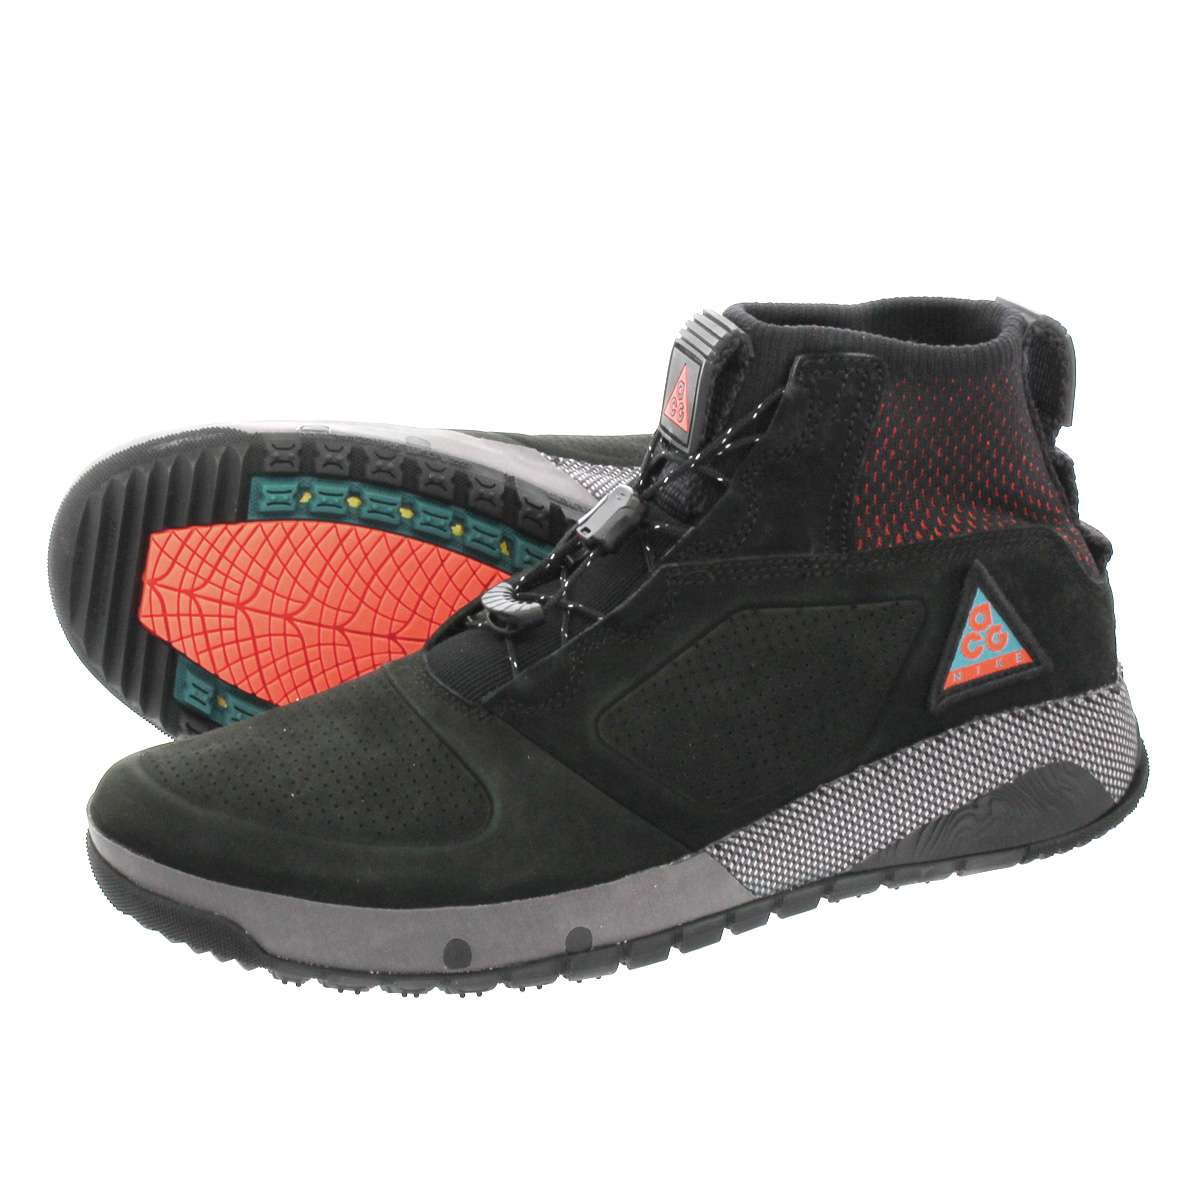 huge discount 9ff6a d537c NIKE ACG RUCKEL RIDGE Nike ACG ラックルリッジ BLACK GEODE TEAL HABANERO RED  aq9333-002